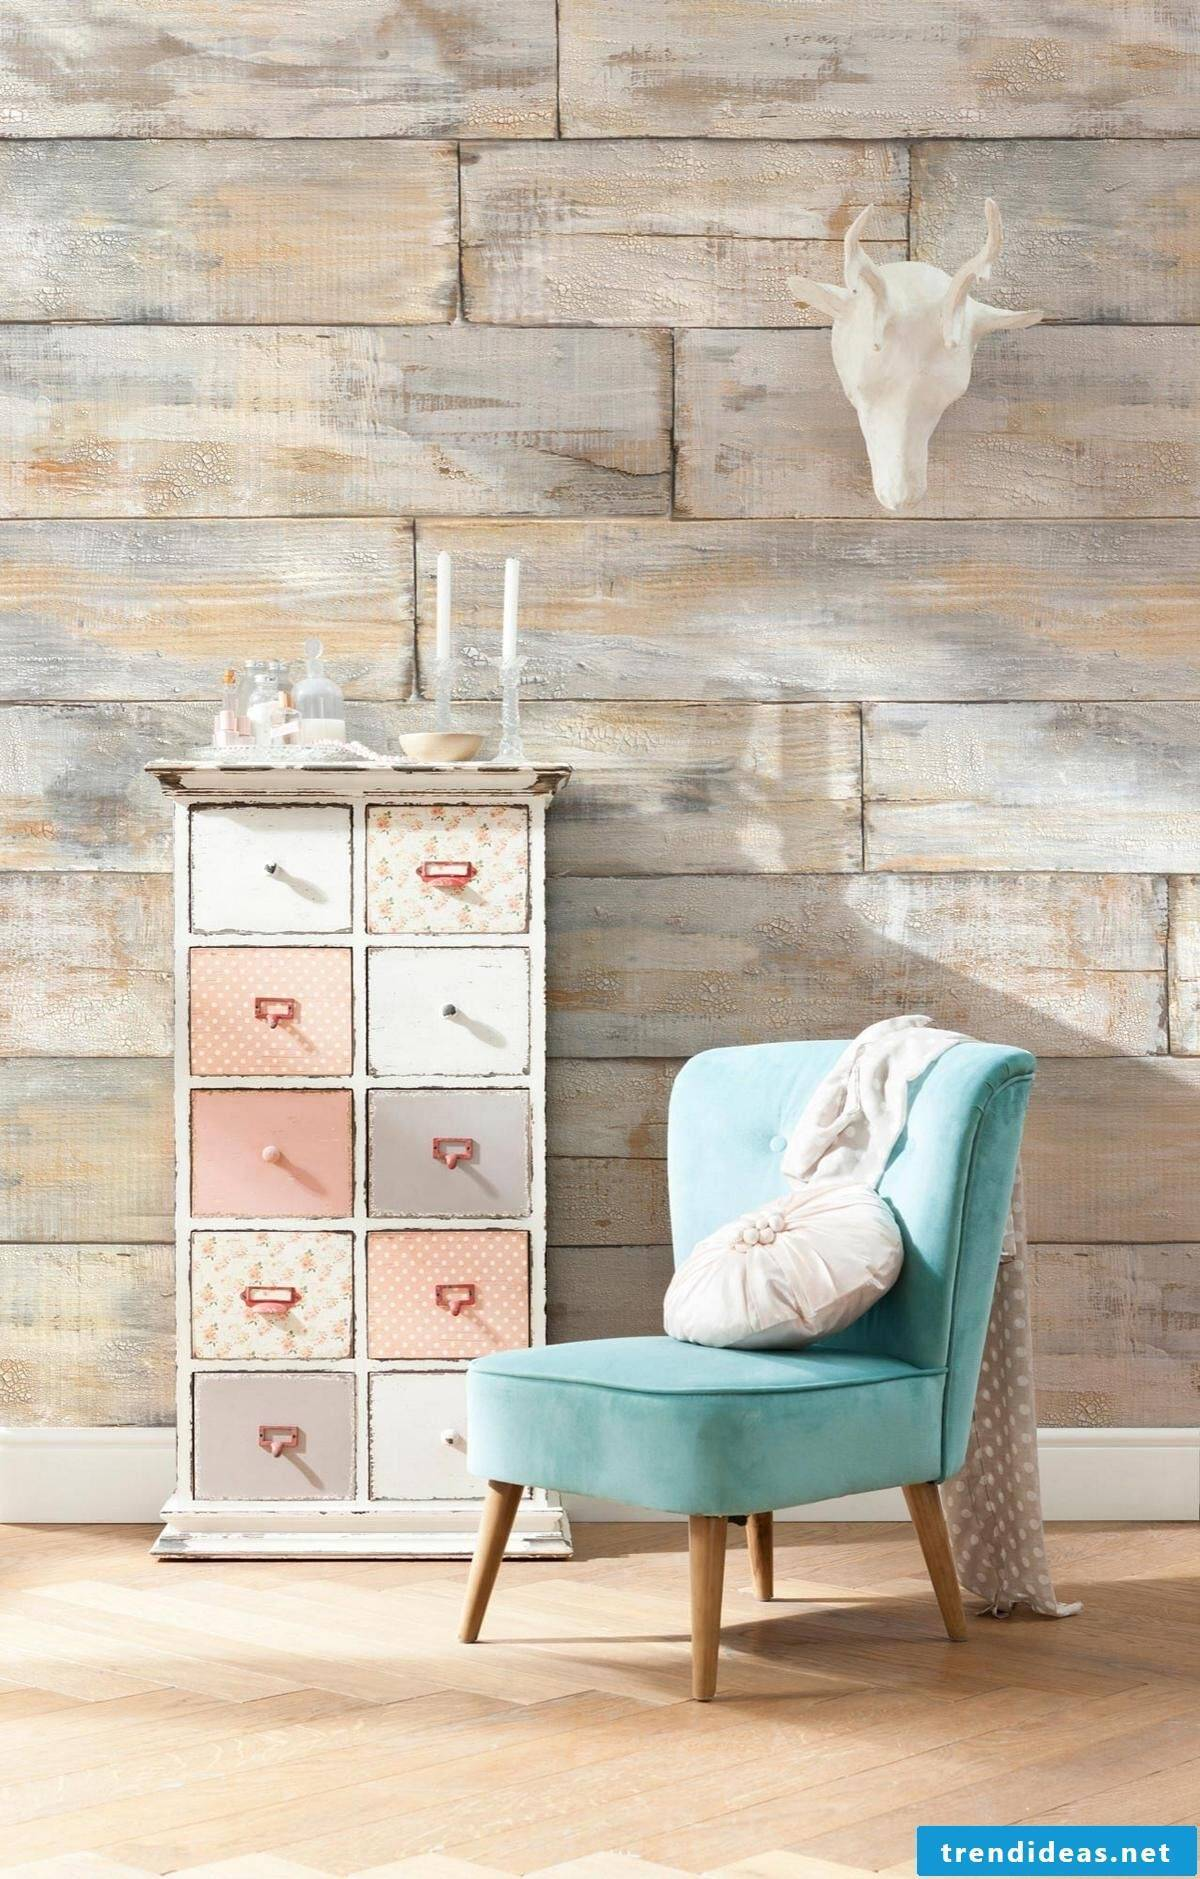 Wood look Shabby Chic style